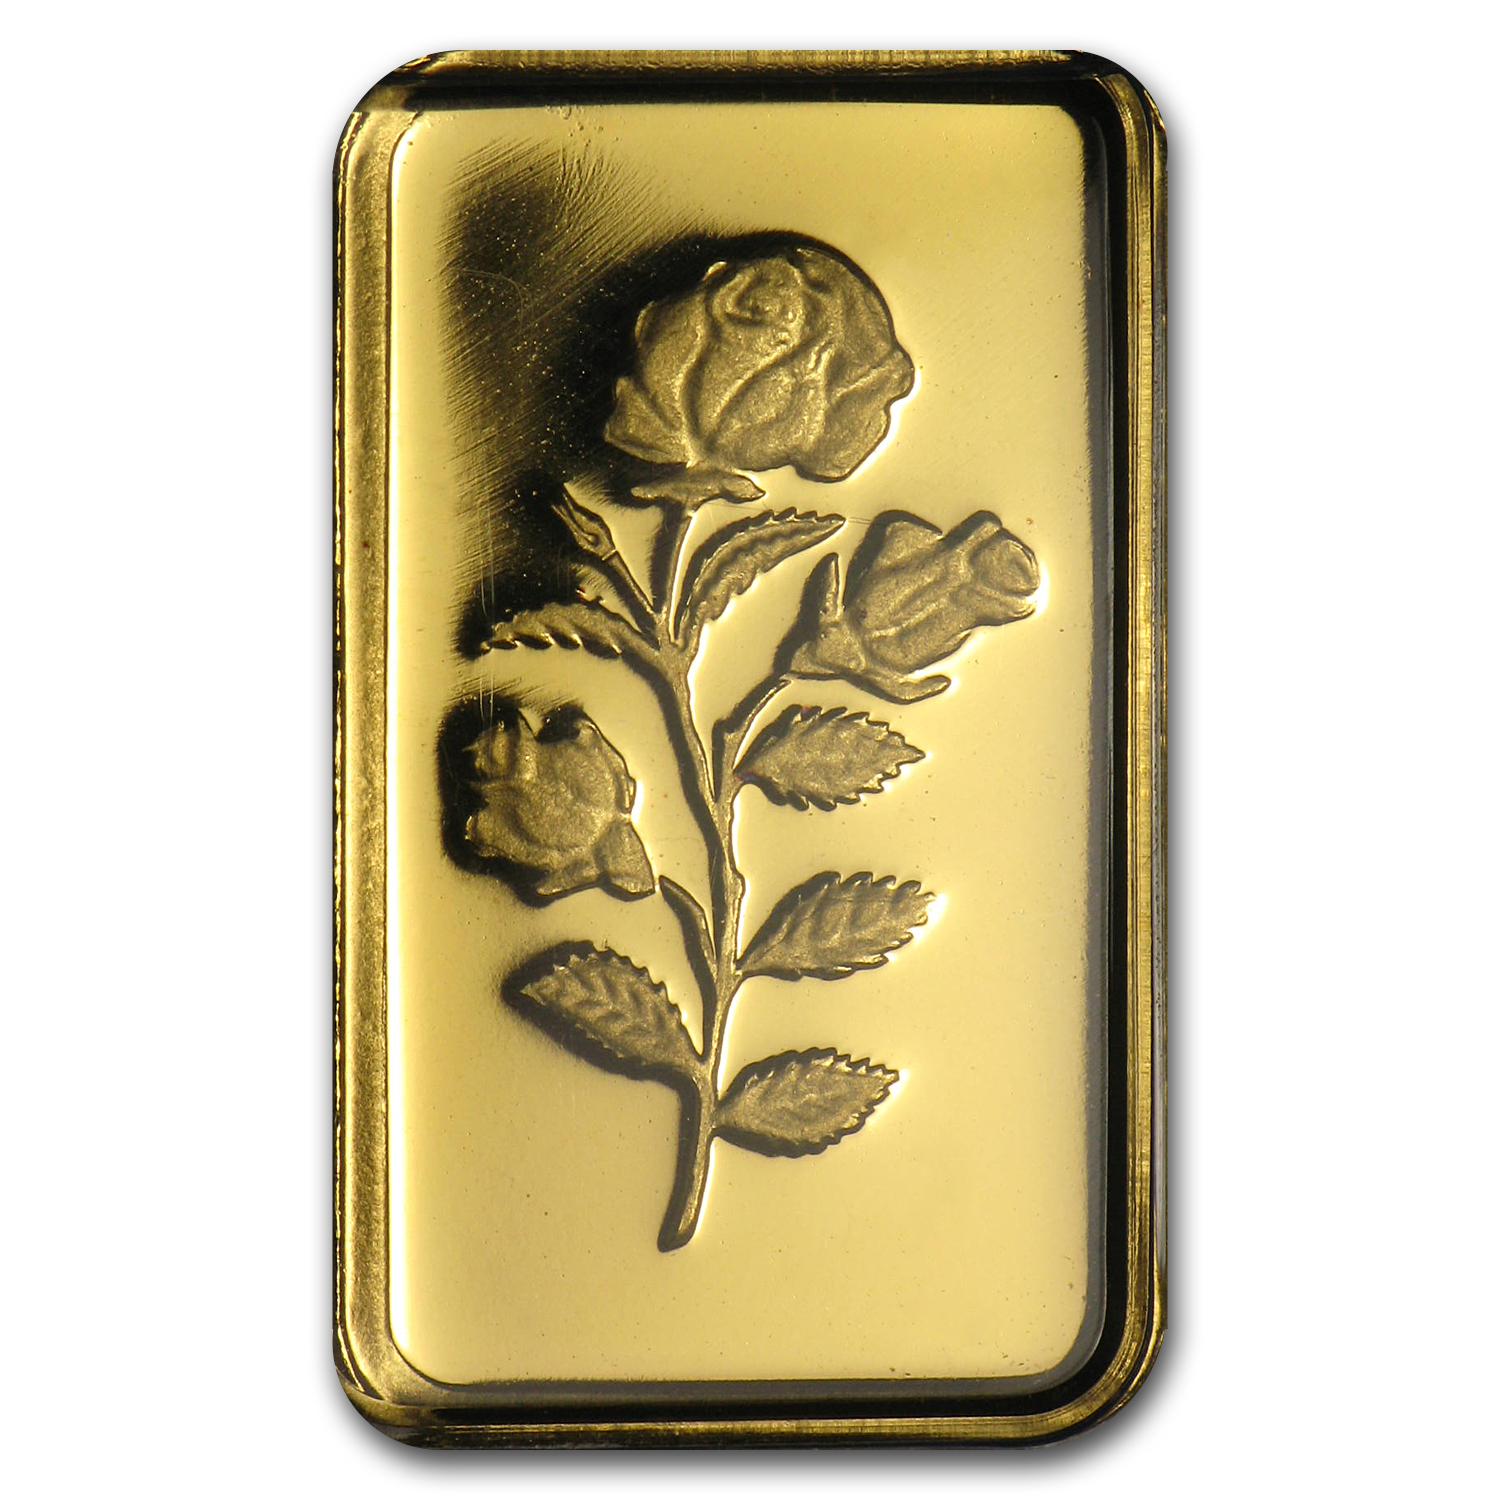 5 gram Gold Bar - Pamp Suisse Rose (In Assay)